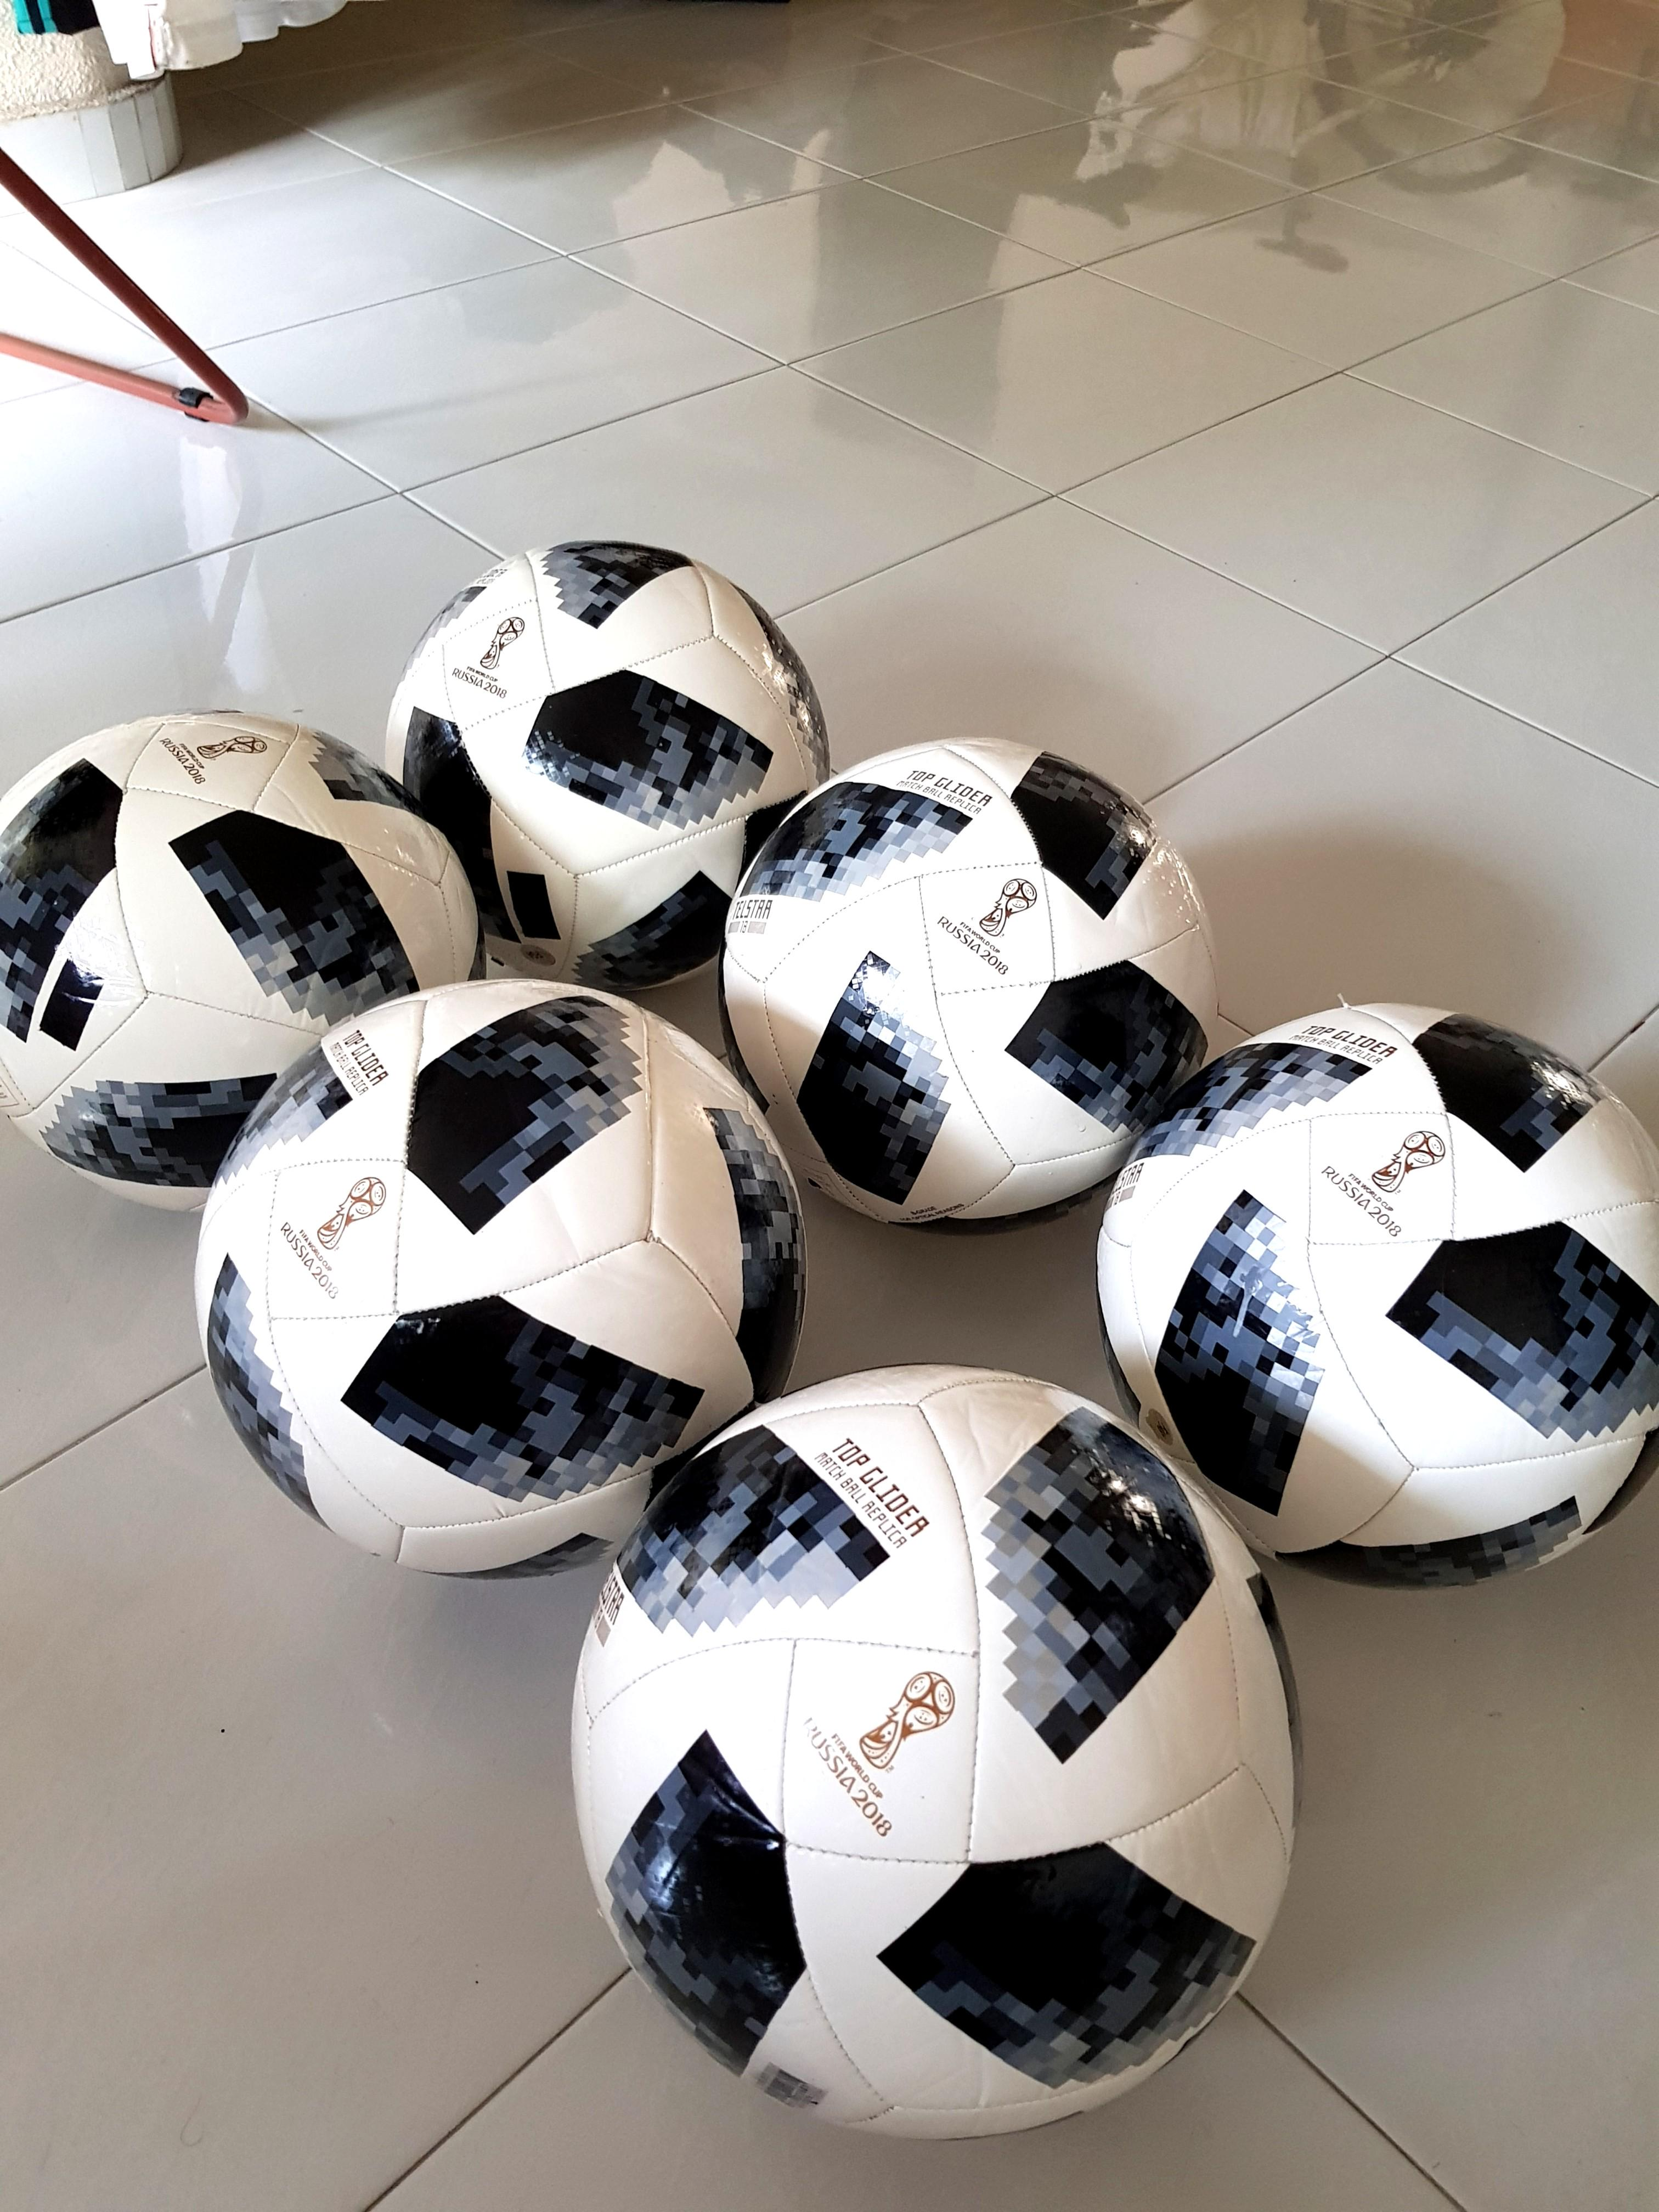 Festival Exquisito Indefinido  REJECT STOCK > ADIDAS Telstar 18 top glider Ball, Sports, Sports & Games  Equipment on Carousell